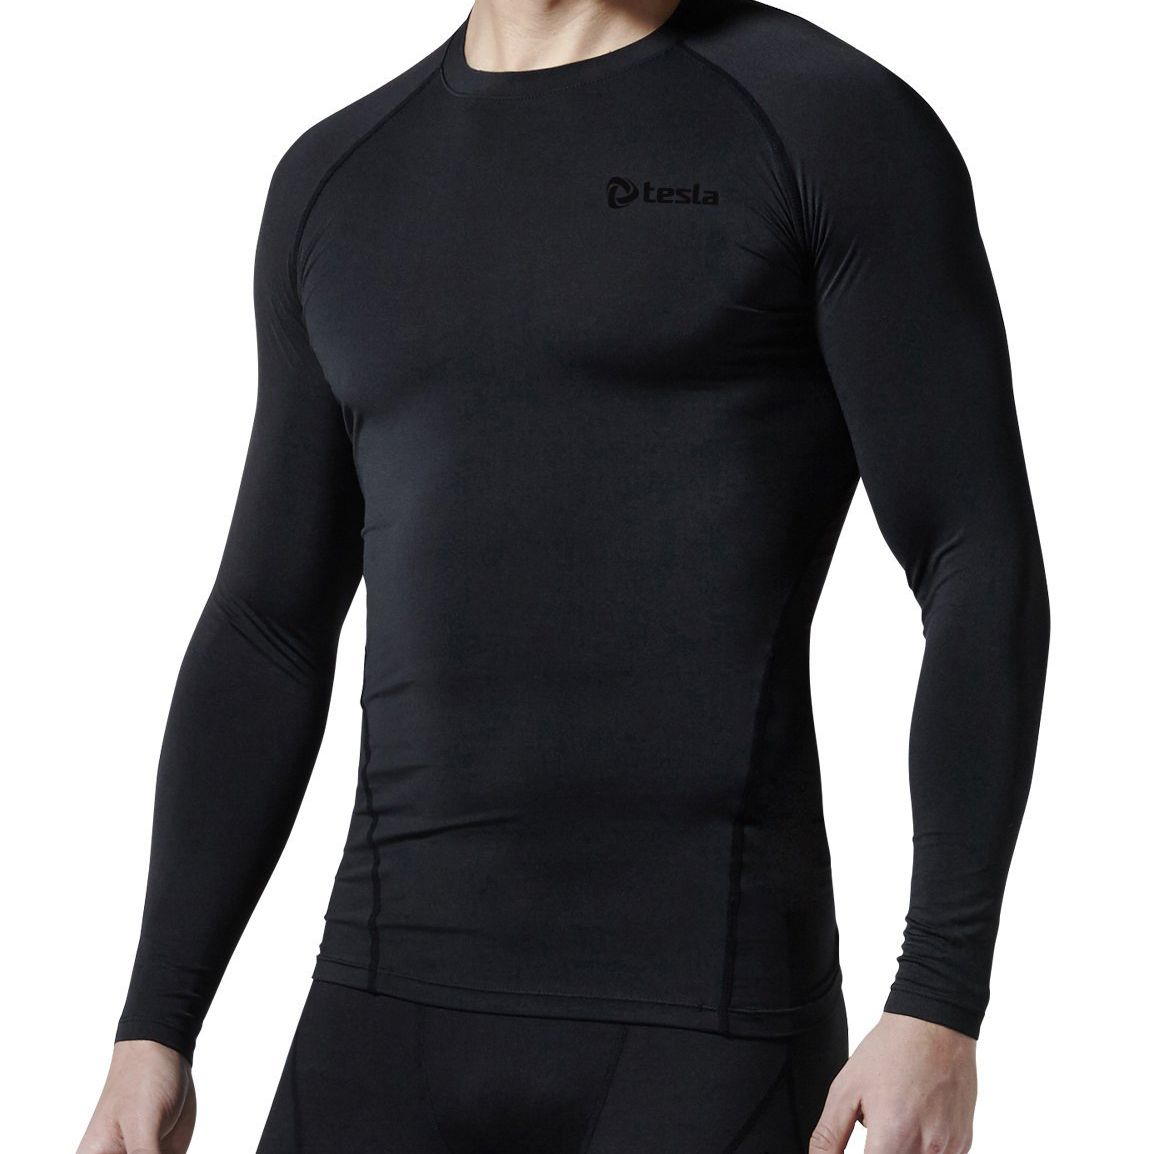 62c240dbbcf How to Dress in Layers for Skiing